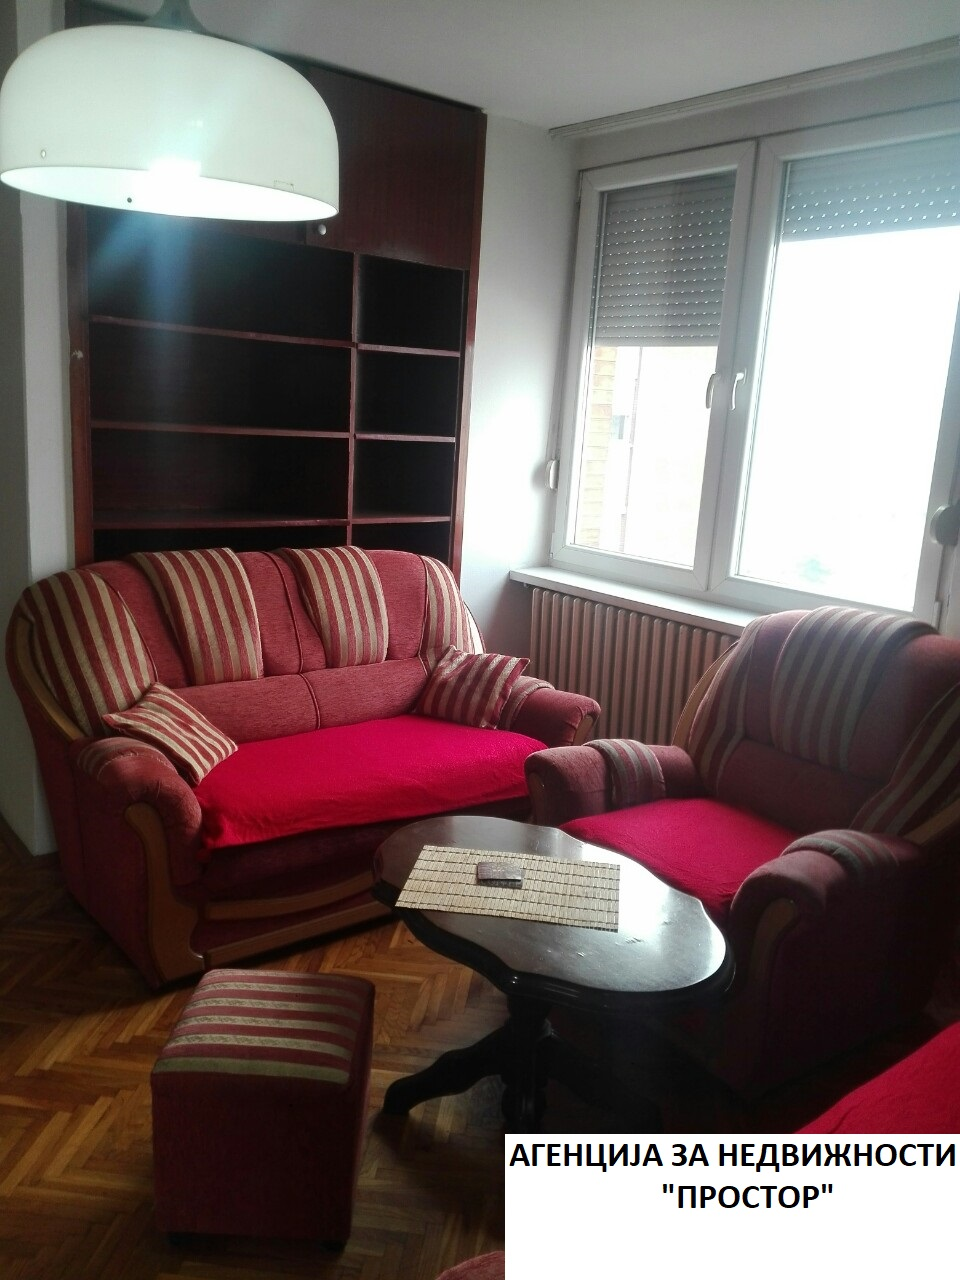 Се ИЗДАВА СТАН / APARTMENT FOR RENT – ЦЕНТАР (83М2